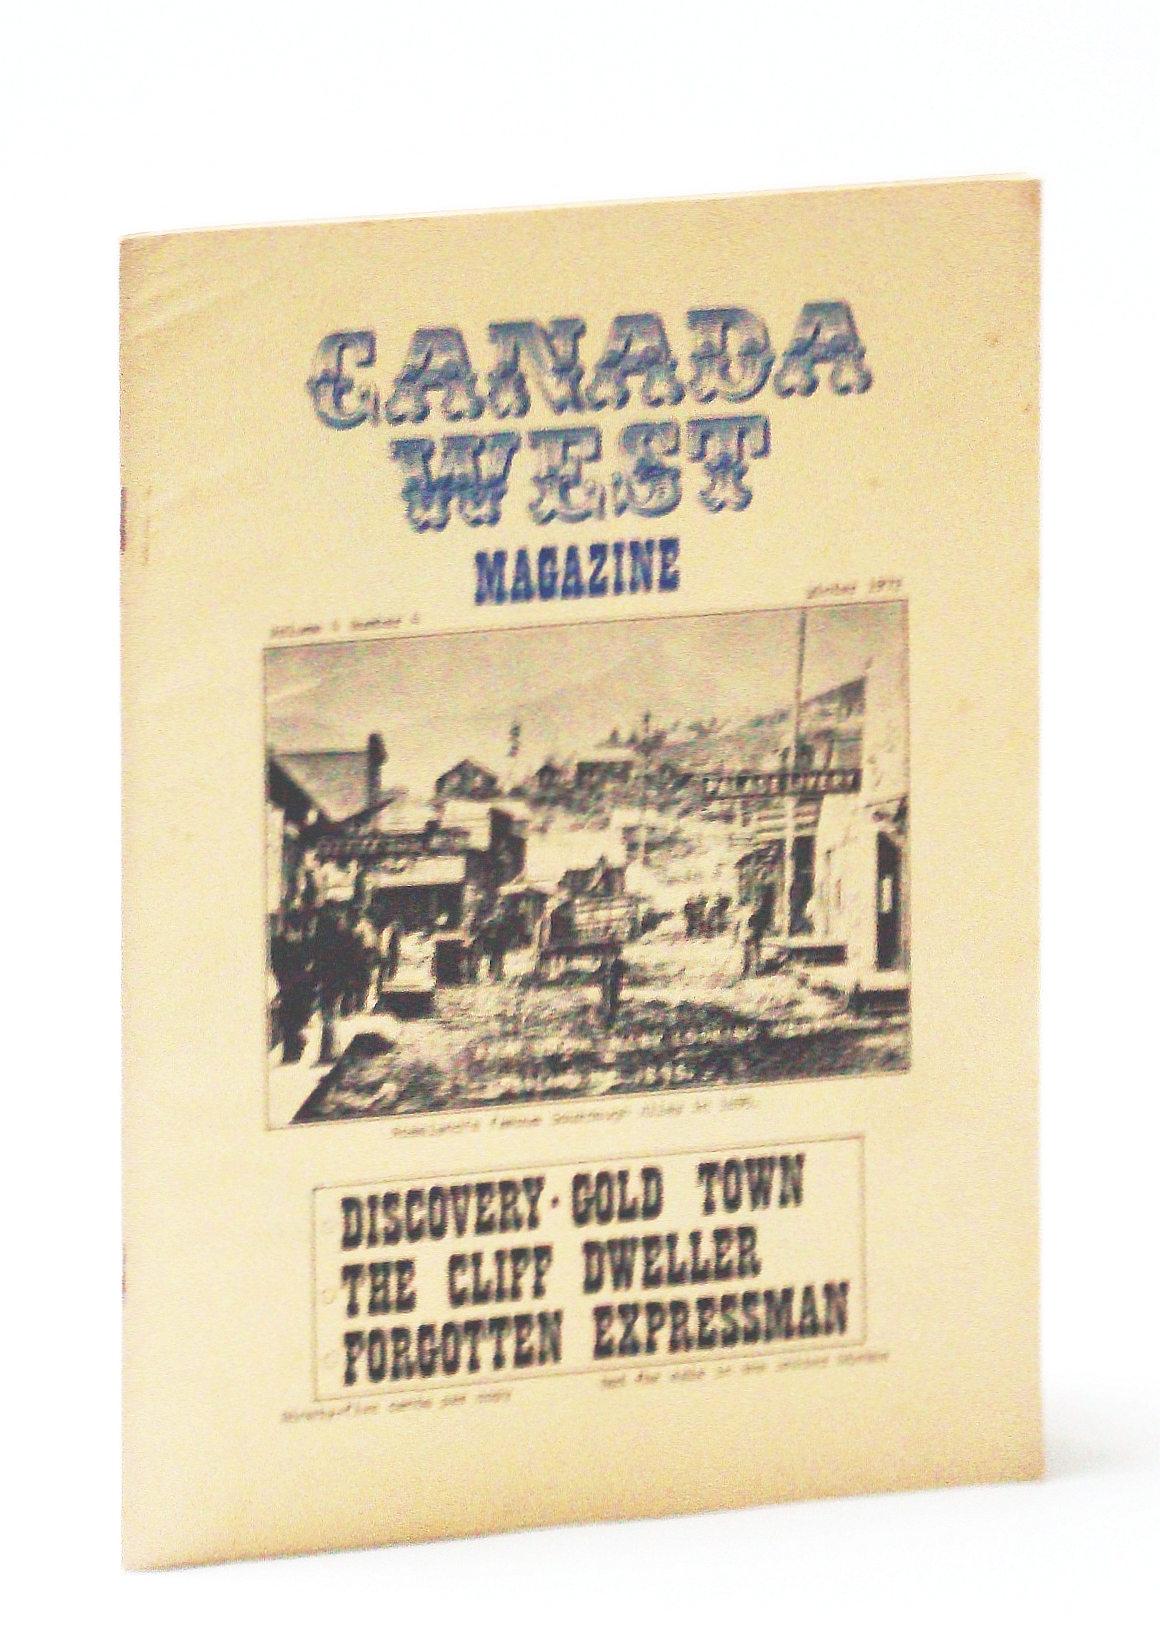 Image for Canada West Magazine, Winter 1972, Volume 4, Number 4 - The Cliff Dweller / The 1913 Liberty Nickel